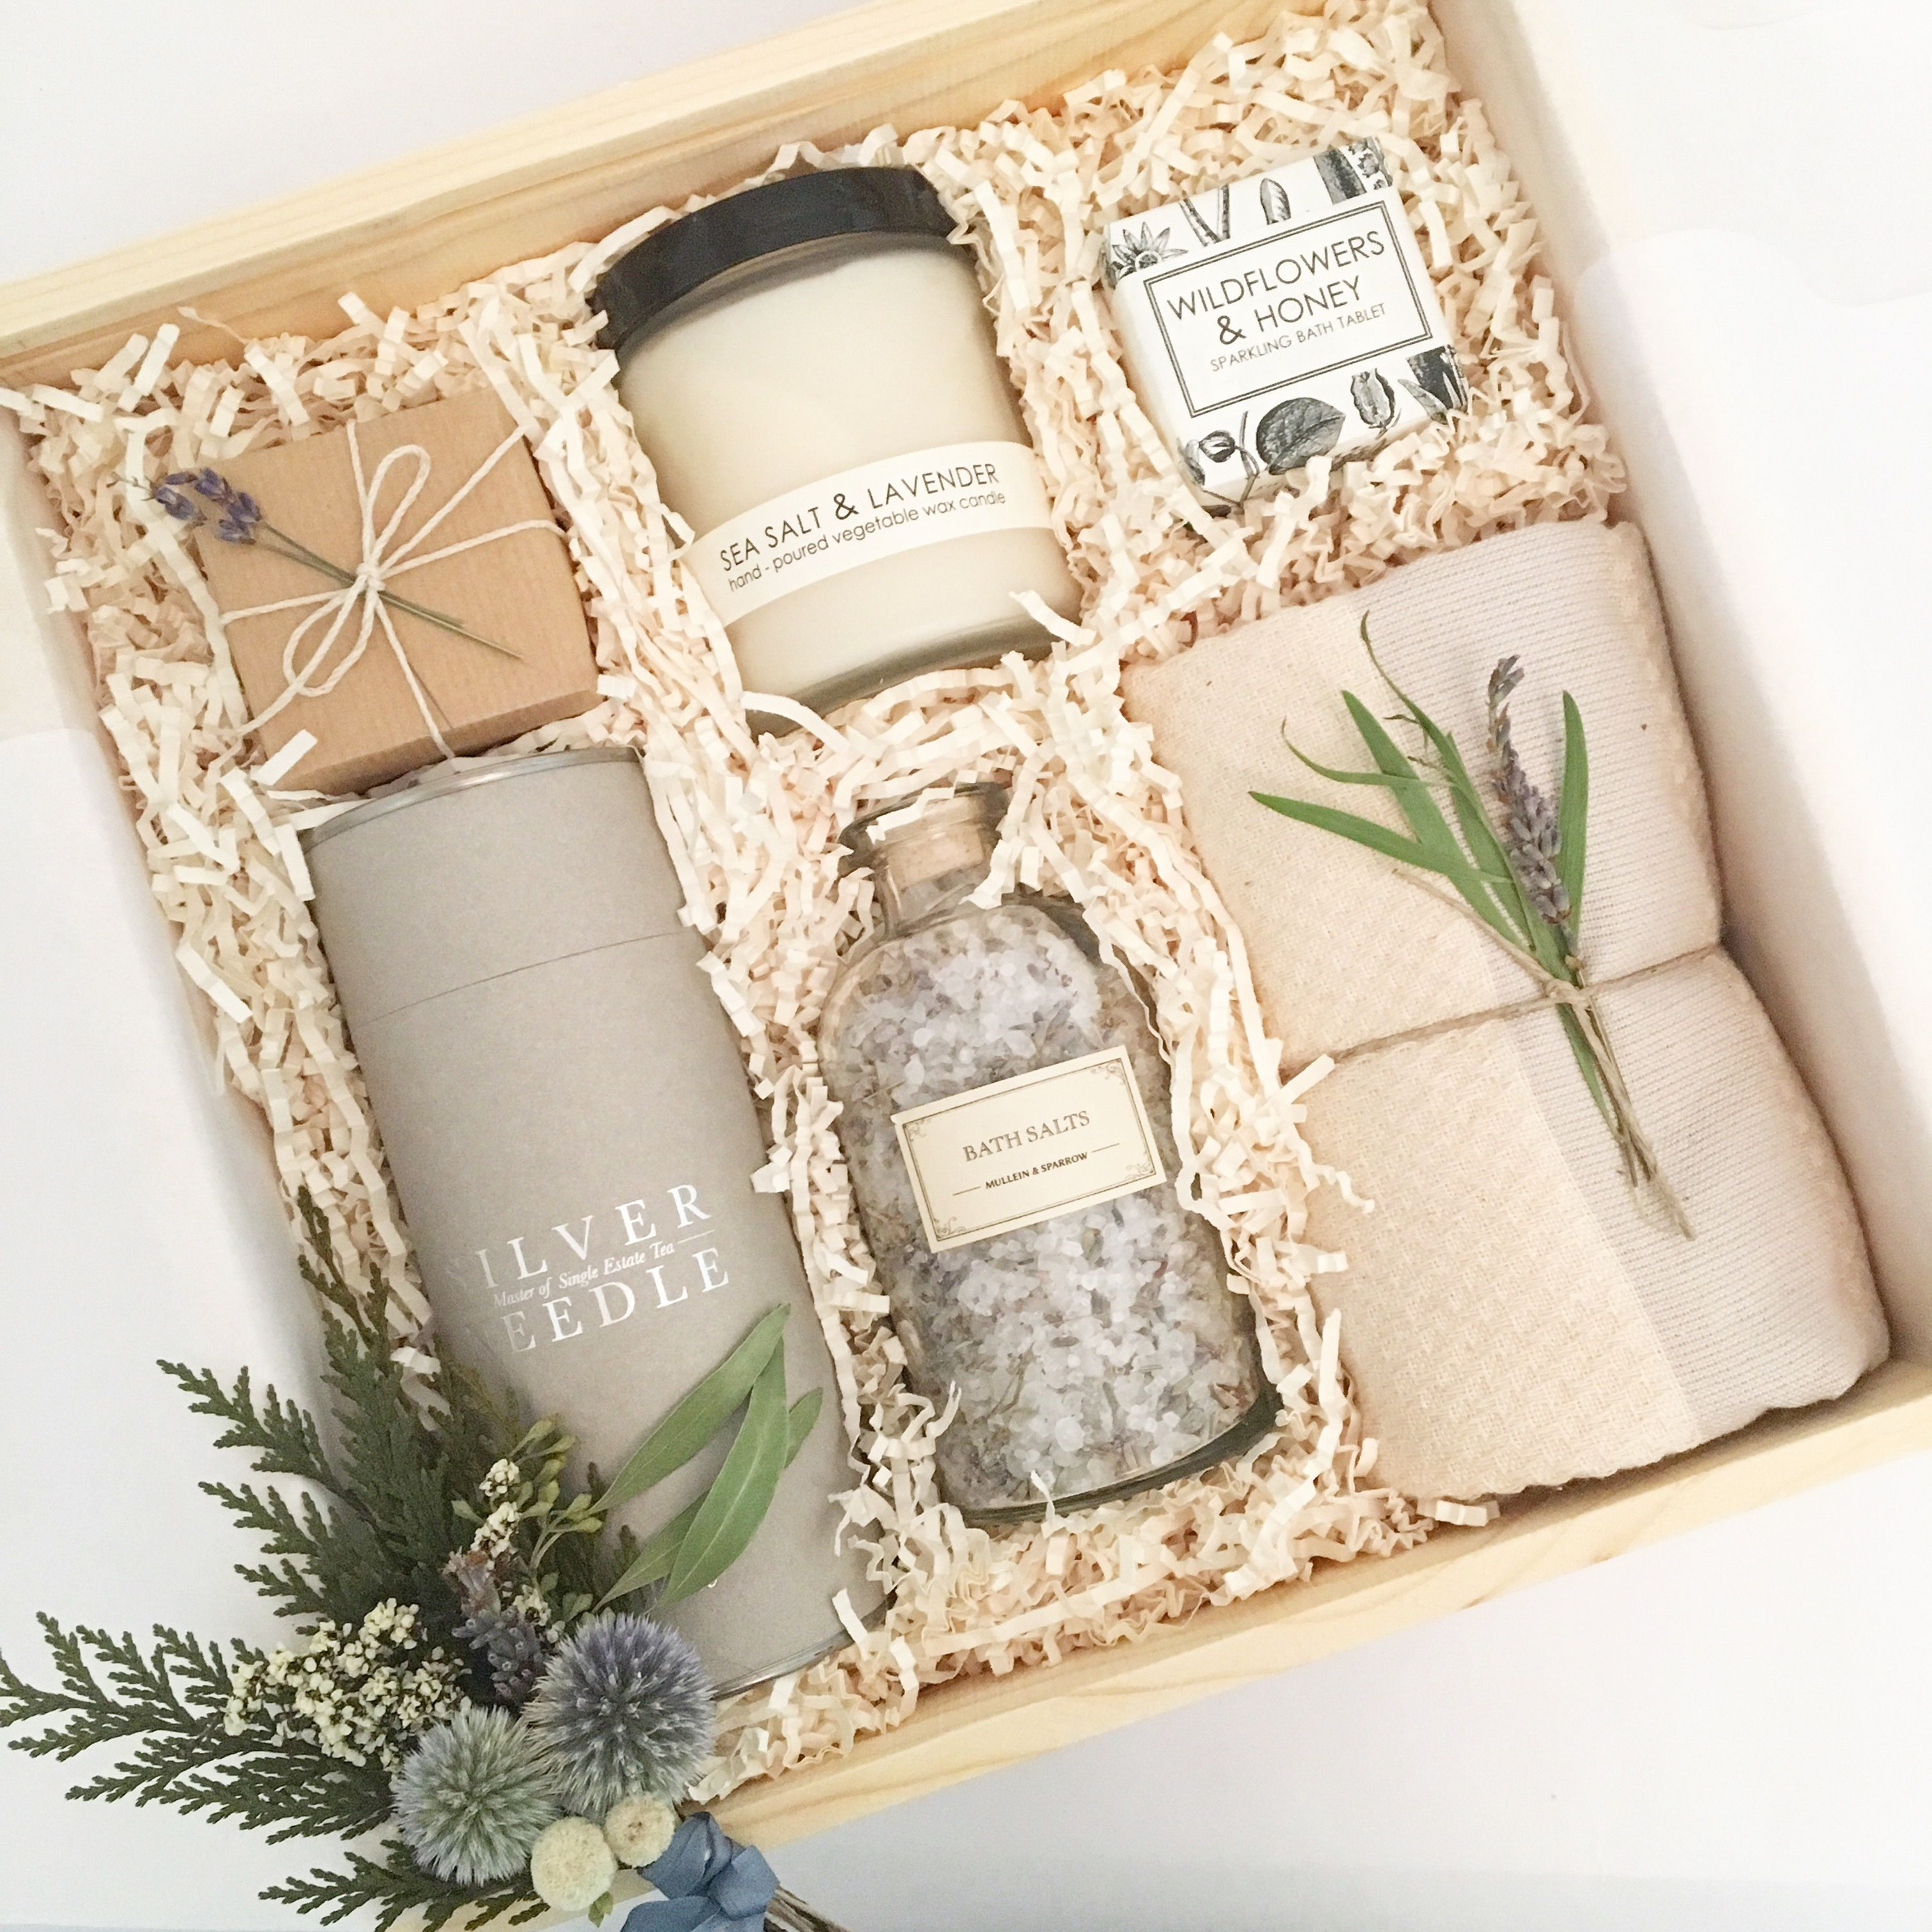 Custom birthday gift box from Loved and Found. Curated